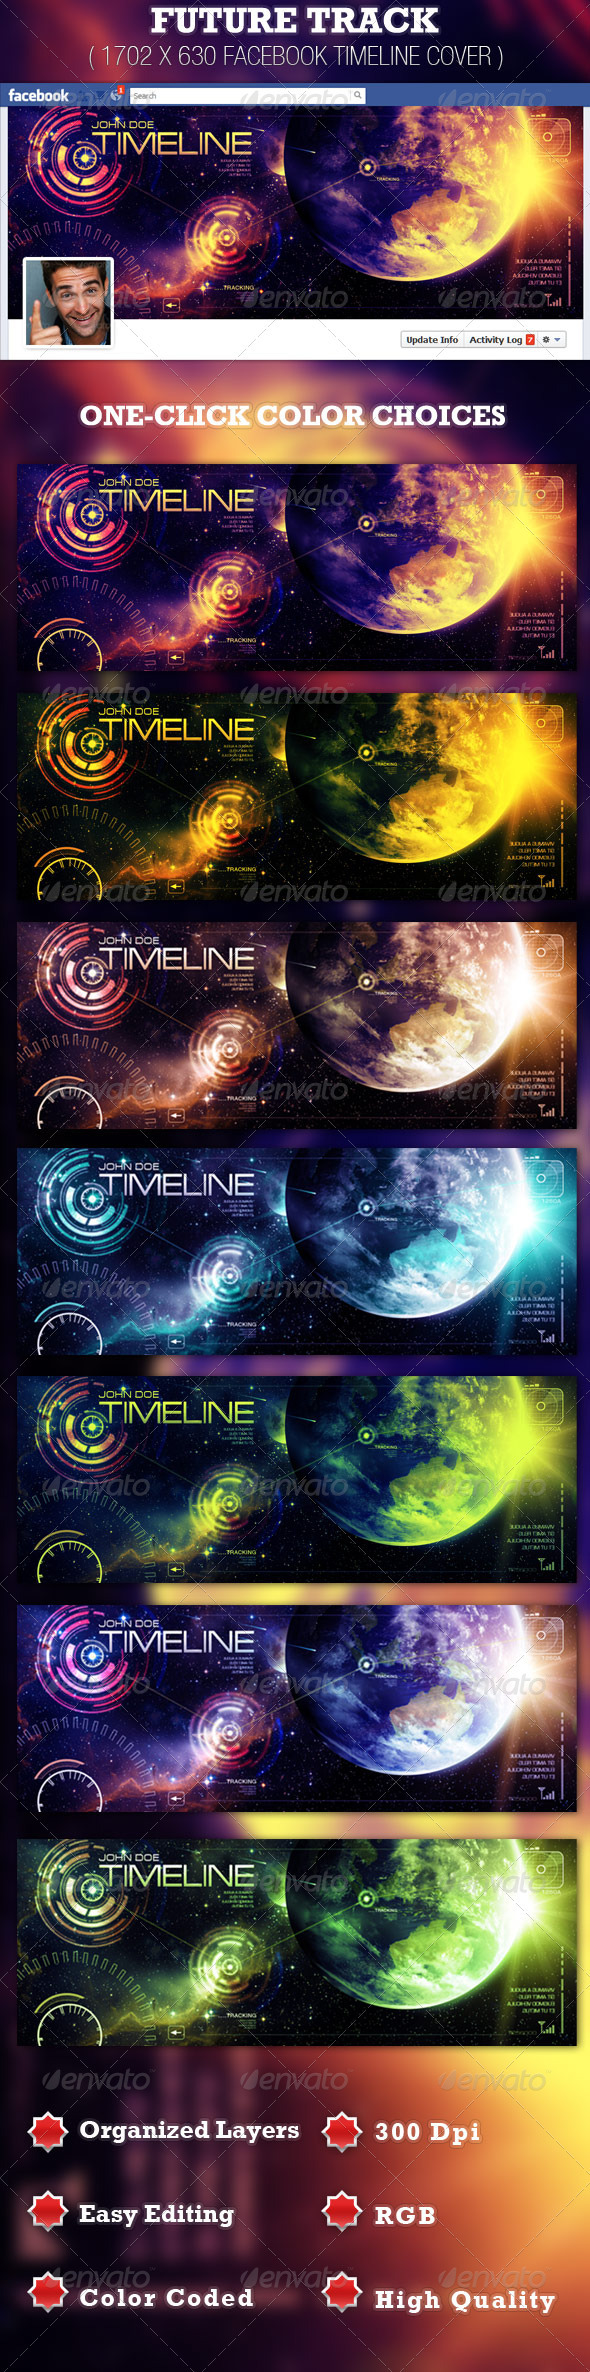 GraphicRiver Future Track Facebook Timeline Cover Template 2084395